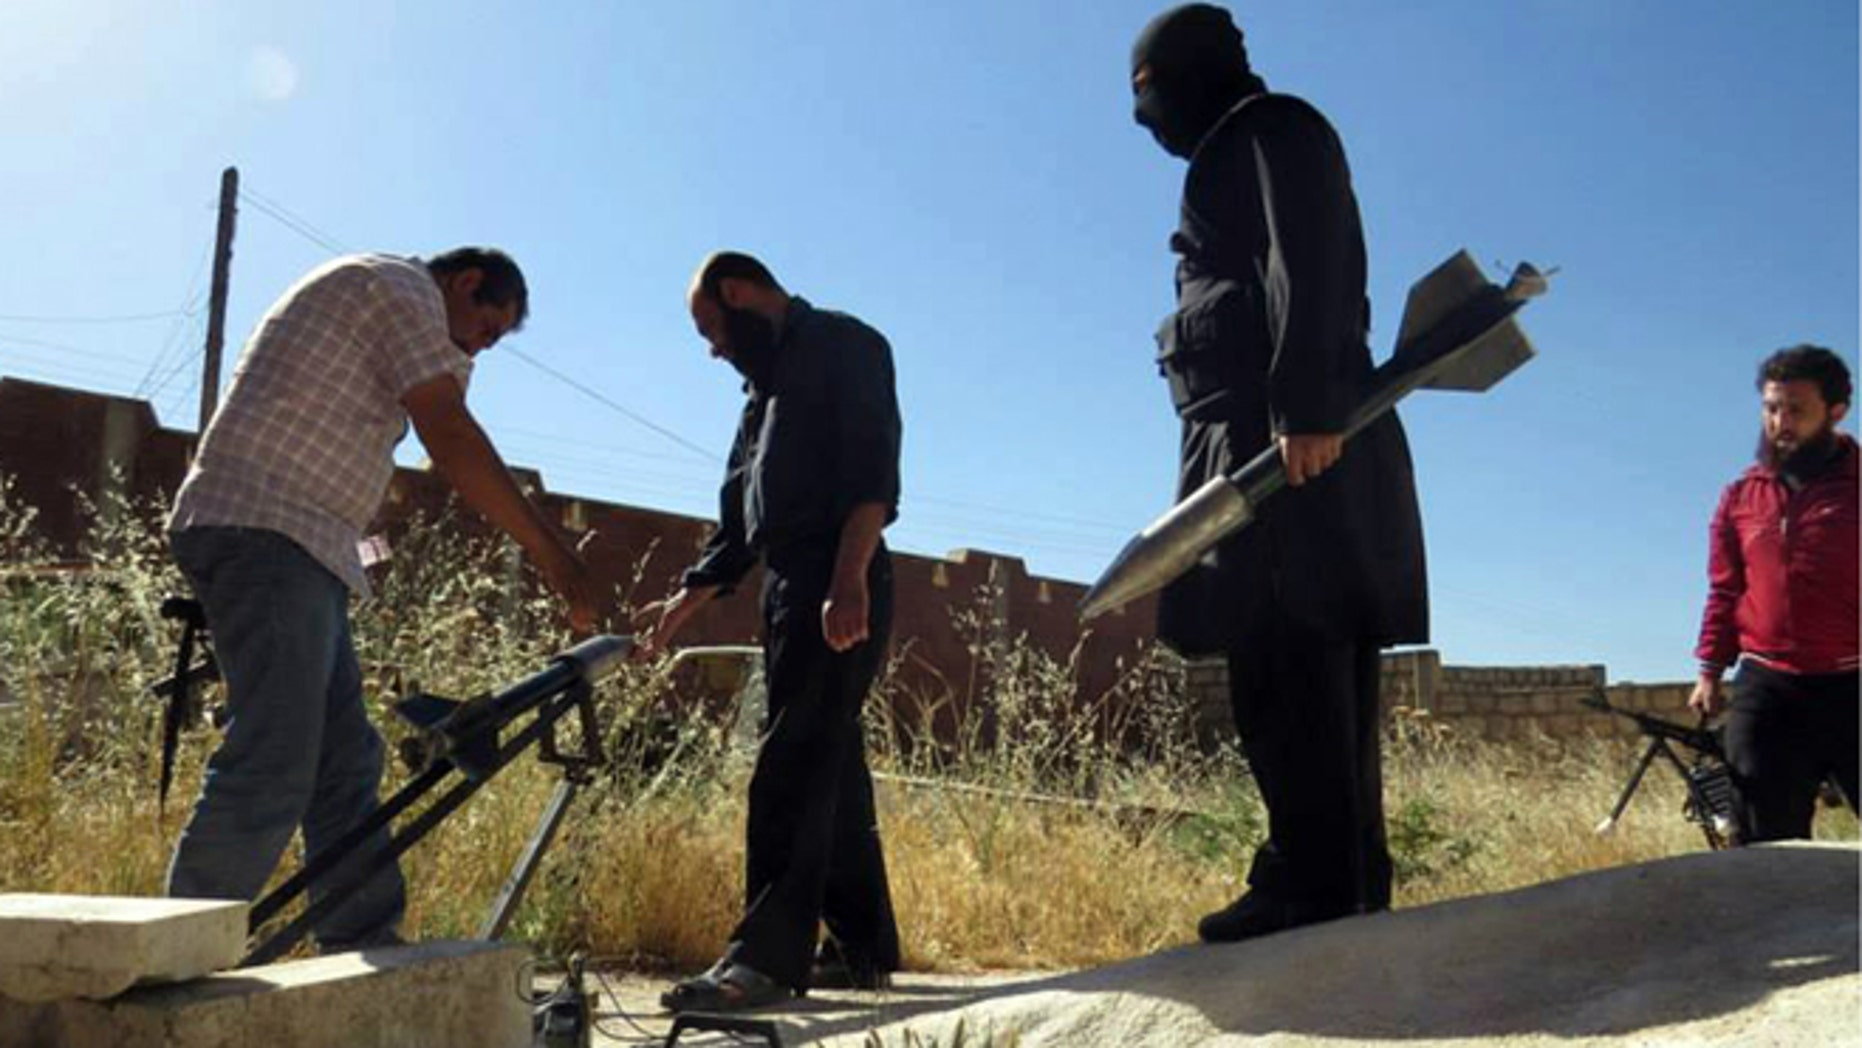 FILE: June 4, 2013: Syrian rebels preparing to fire locally made rockets, in Idlib province, northern Syria. (image by Edlib News Network and  authenticated on its contents and other reporting.)